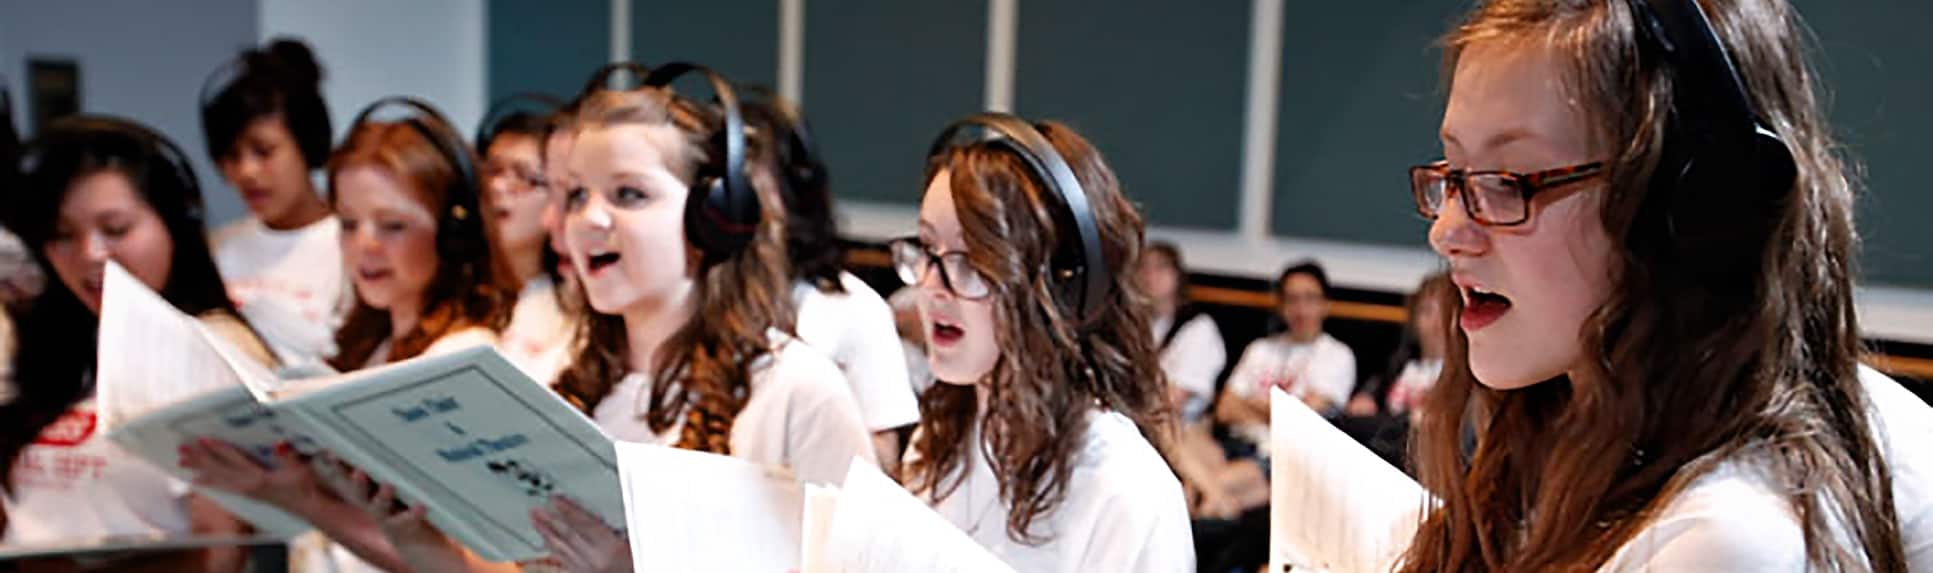 Young performers wearing headphones and holding binders with sheet music